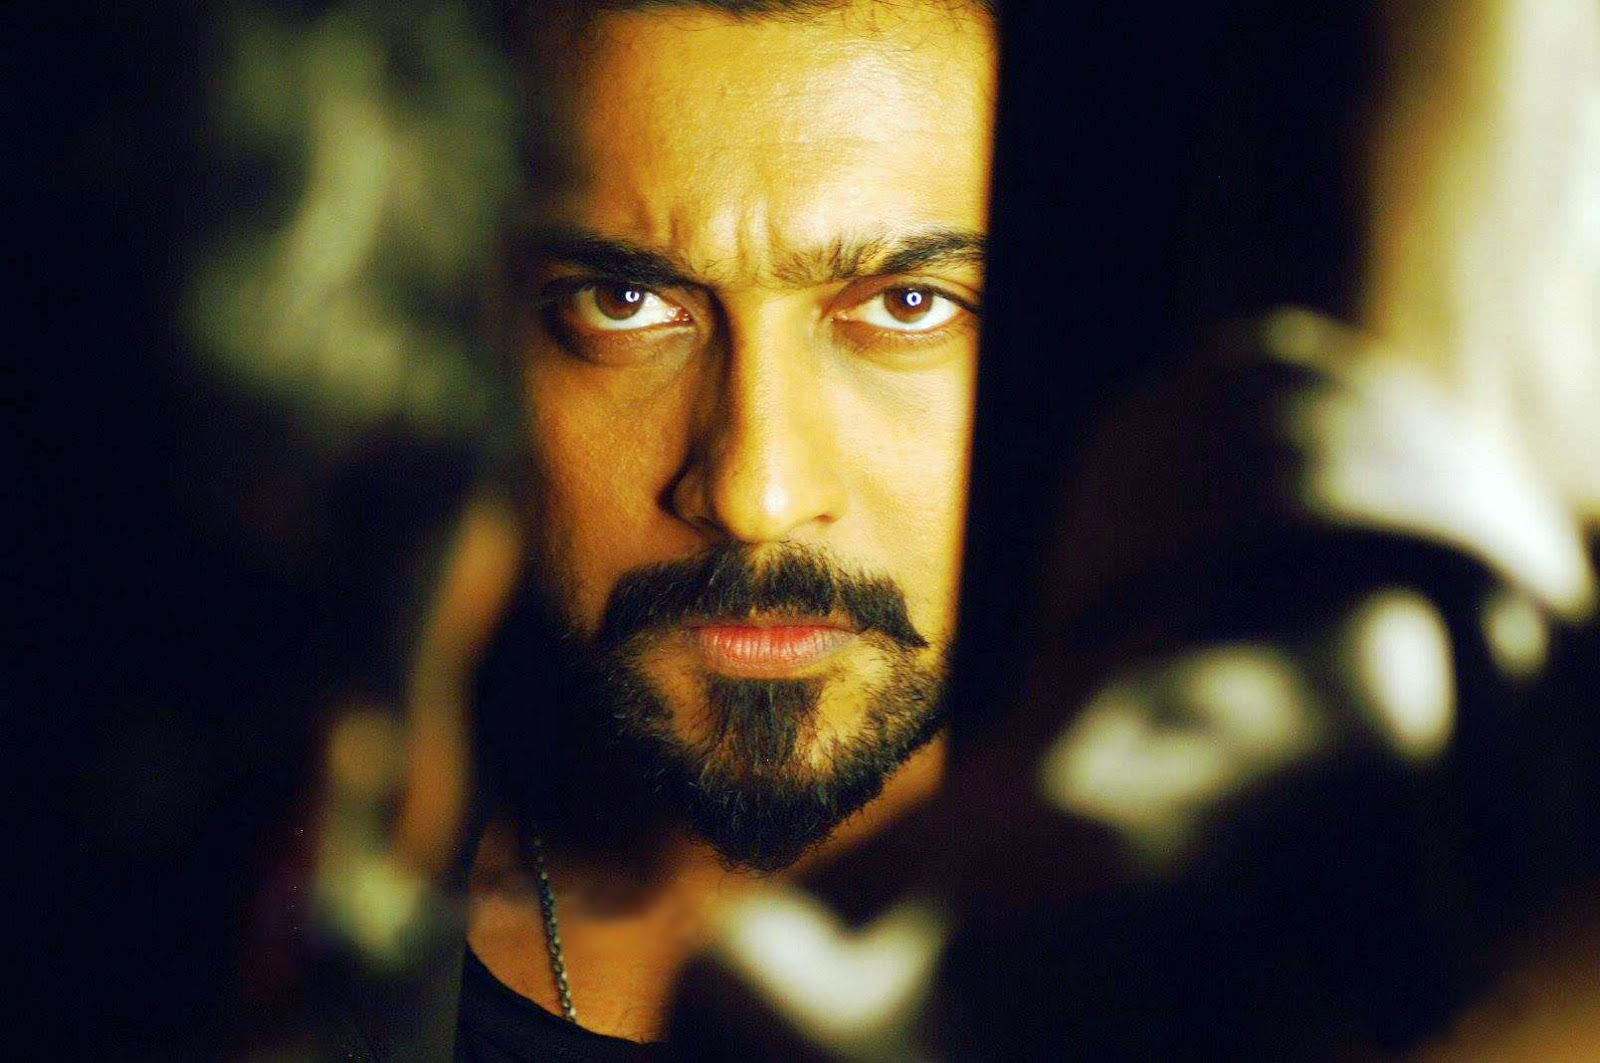 Surya Hd Wallpapers 2016: WallpaperSafari